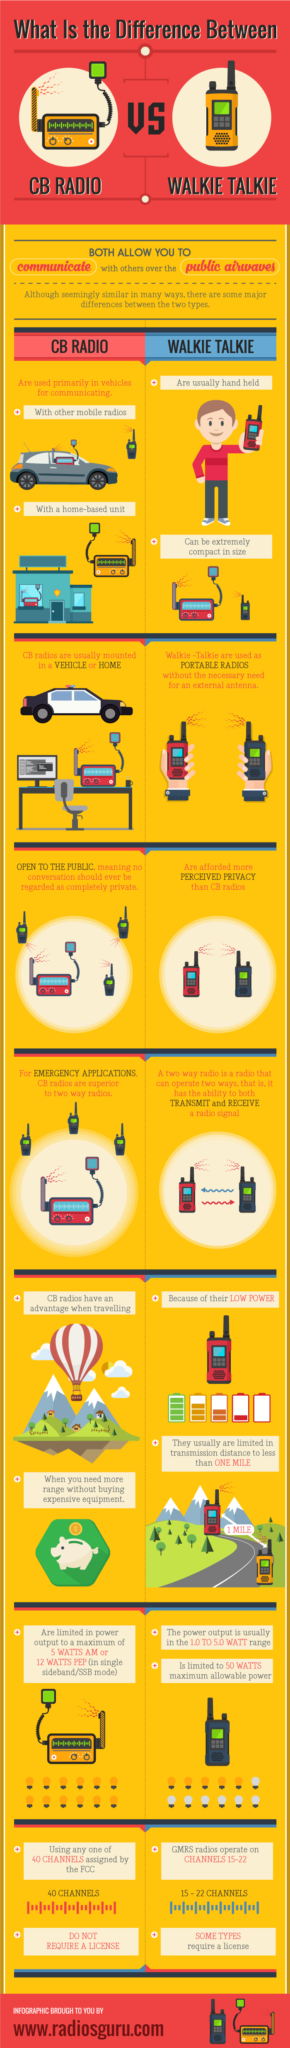 What Is the Difference Between a CB Radio and a Walkie Talkie infographic